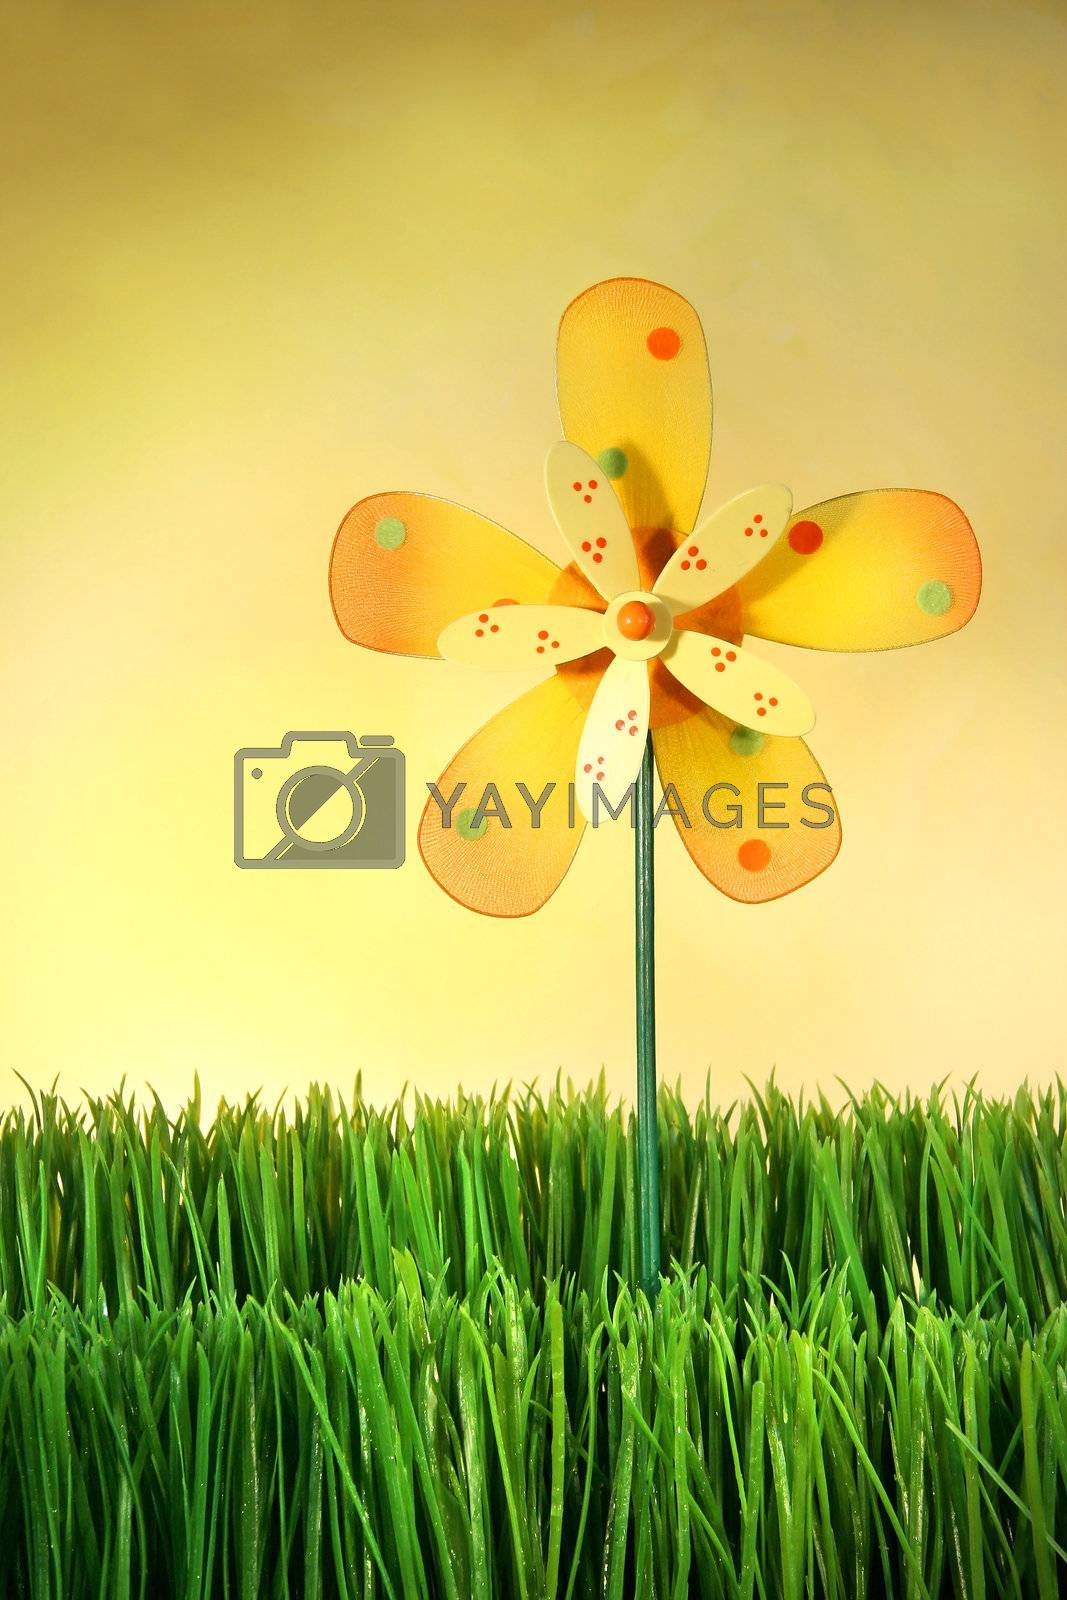 Multi-coloured windmill toy standing in the grass